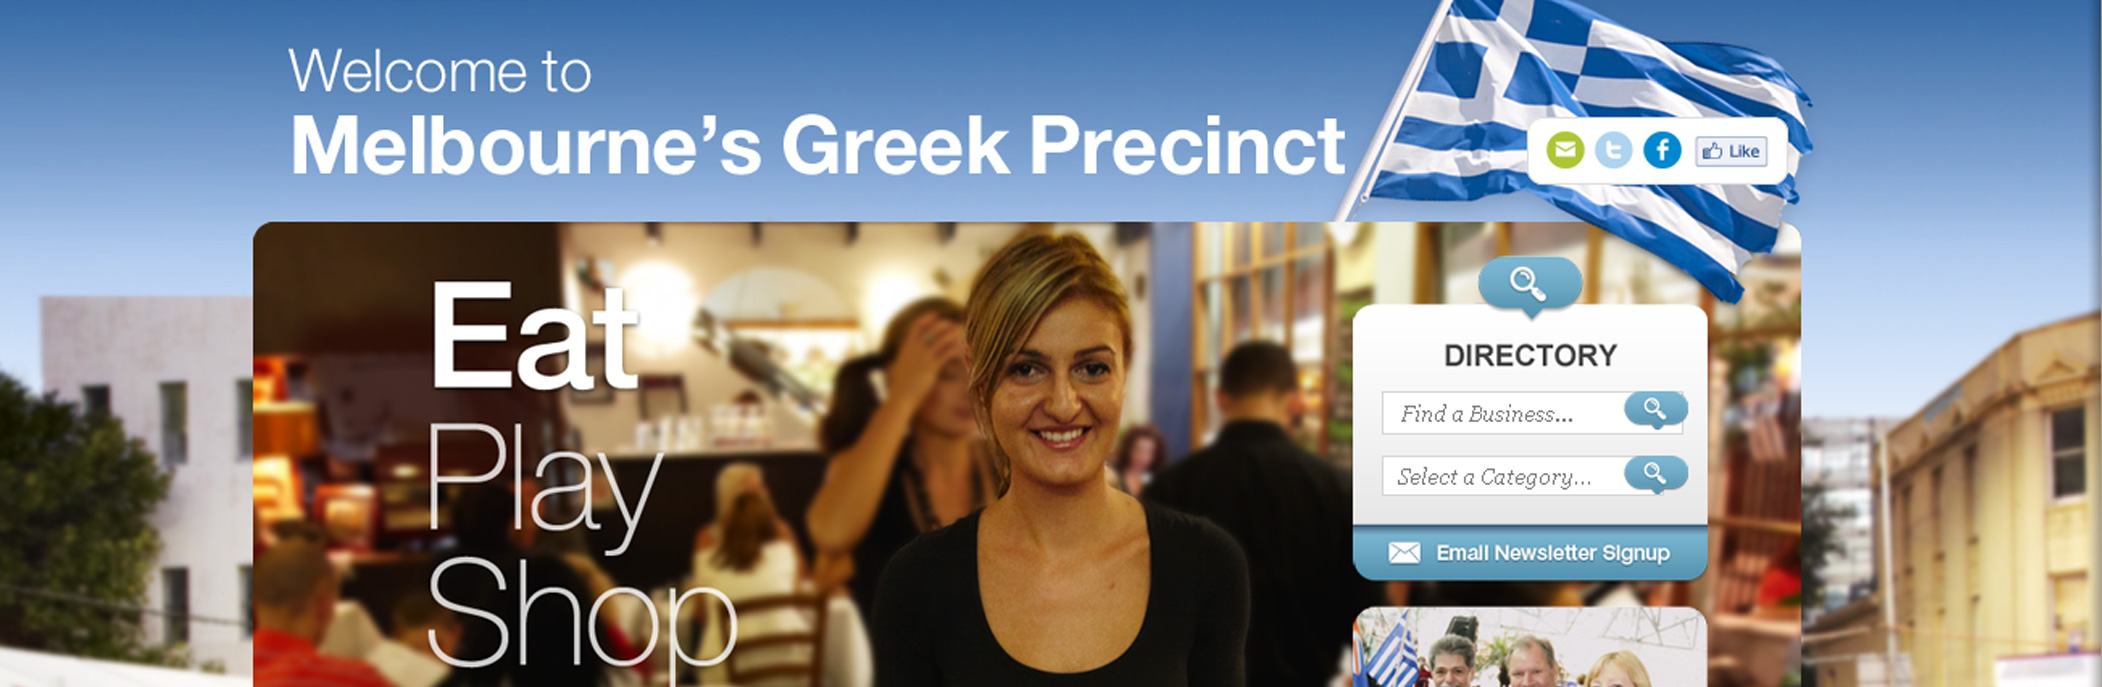 GreekPrecinct_01